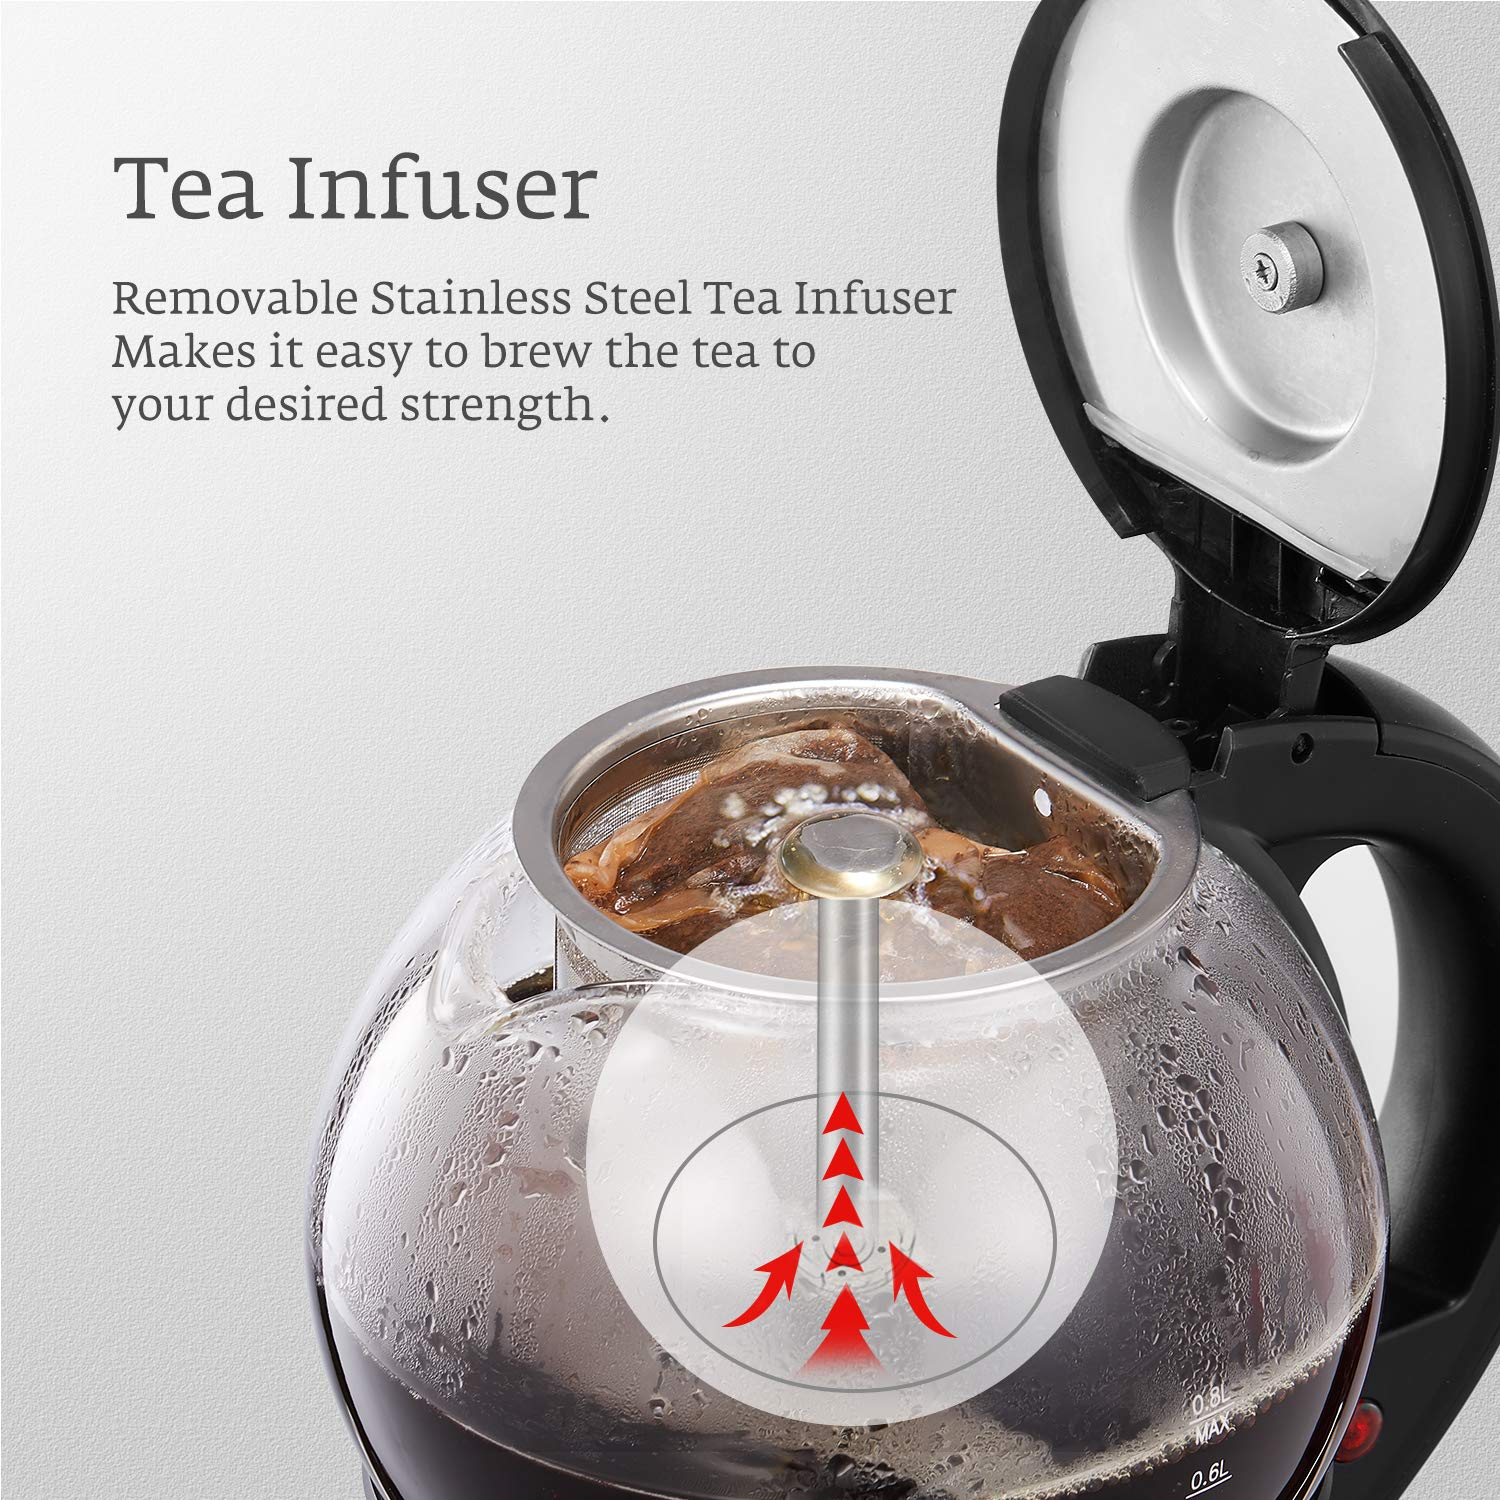 Electric Teapot, AICOOK Cordless Tea Pot Kettle with Removable Tea Infuser Set, Tea Maker For Blooming, Loose Leaf & Tea Bag and Flowering Tea, Keep Warm, Auto Shut-Off and Boil-Dry Protection, BPA Free by AICOOK (Image #5)